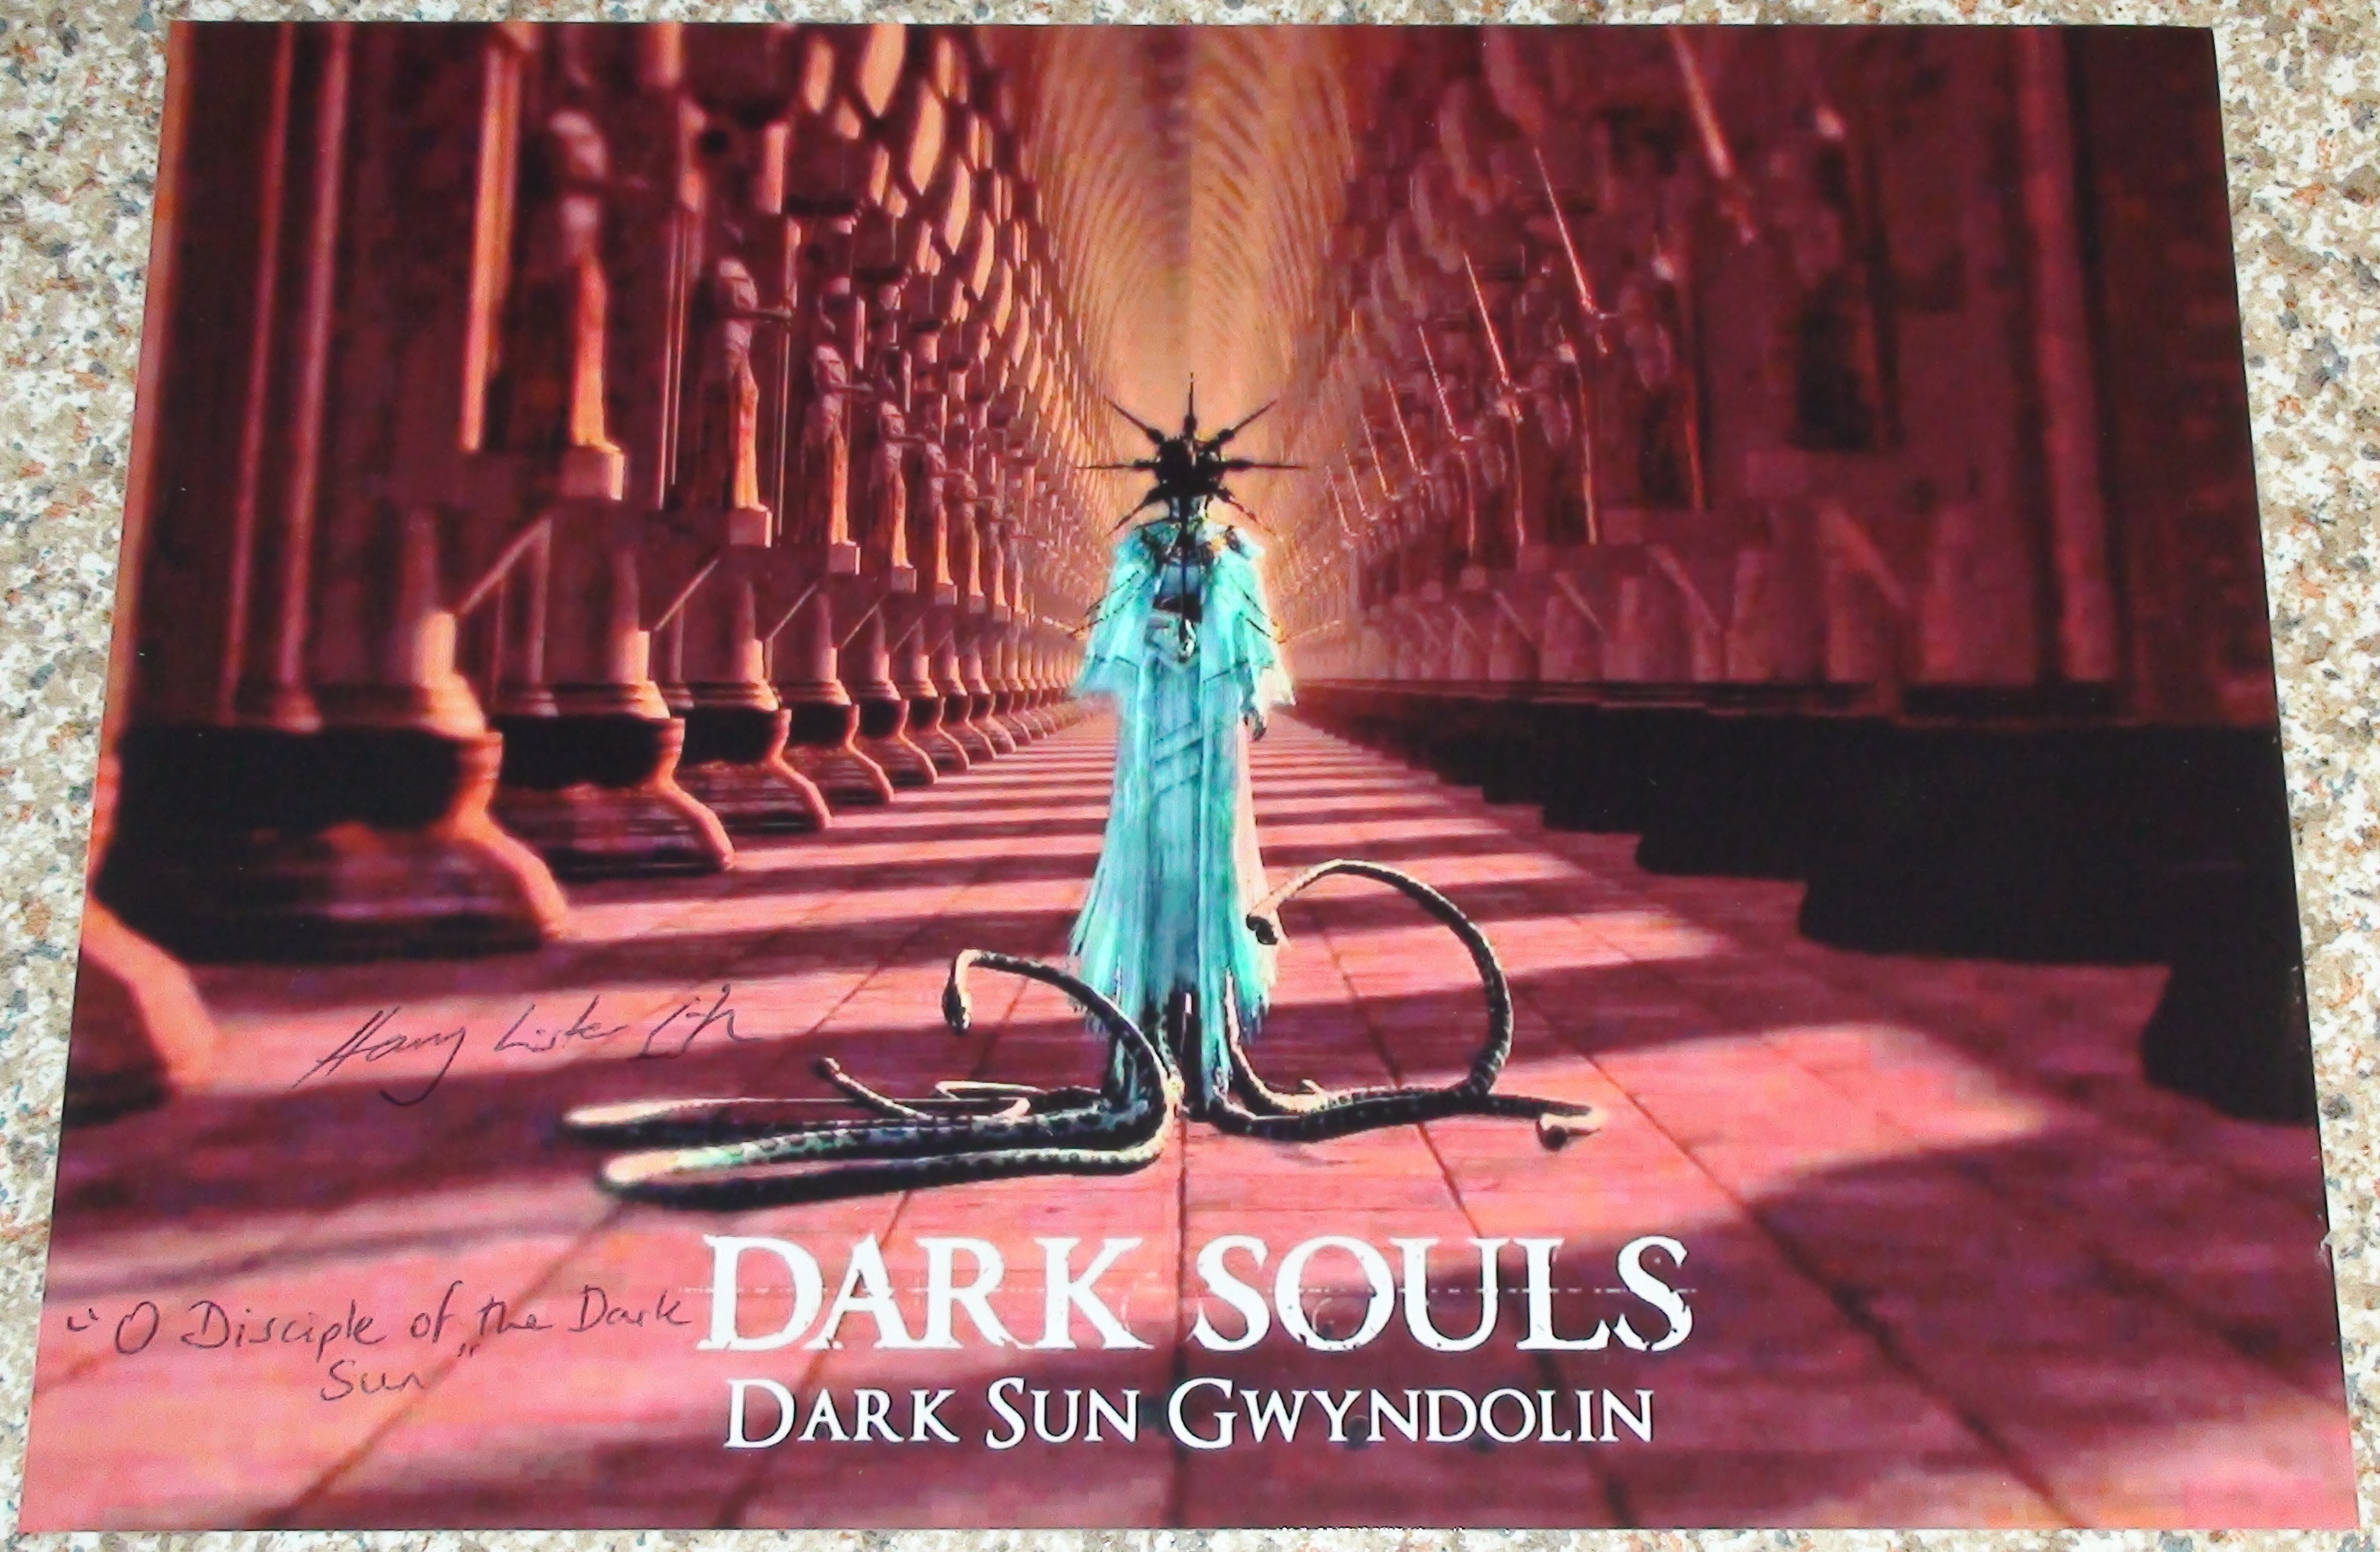 Dark Souls - Harry Lister Smith